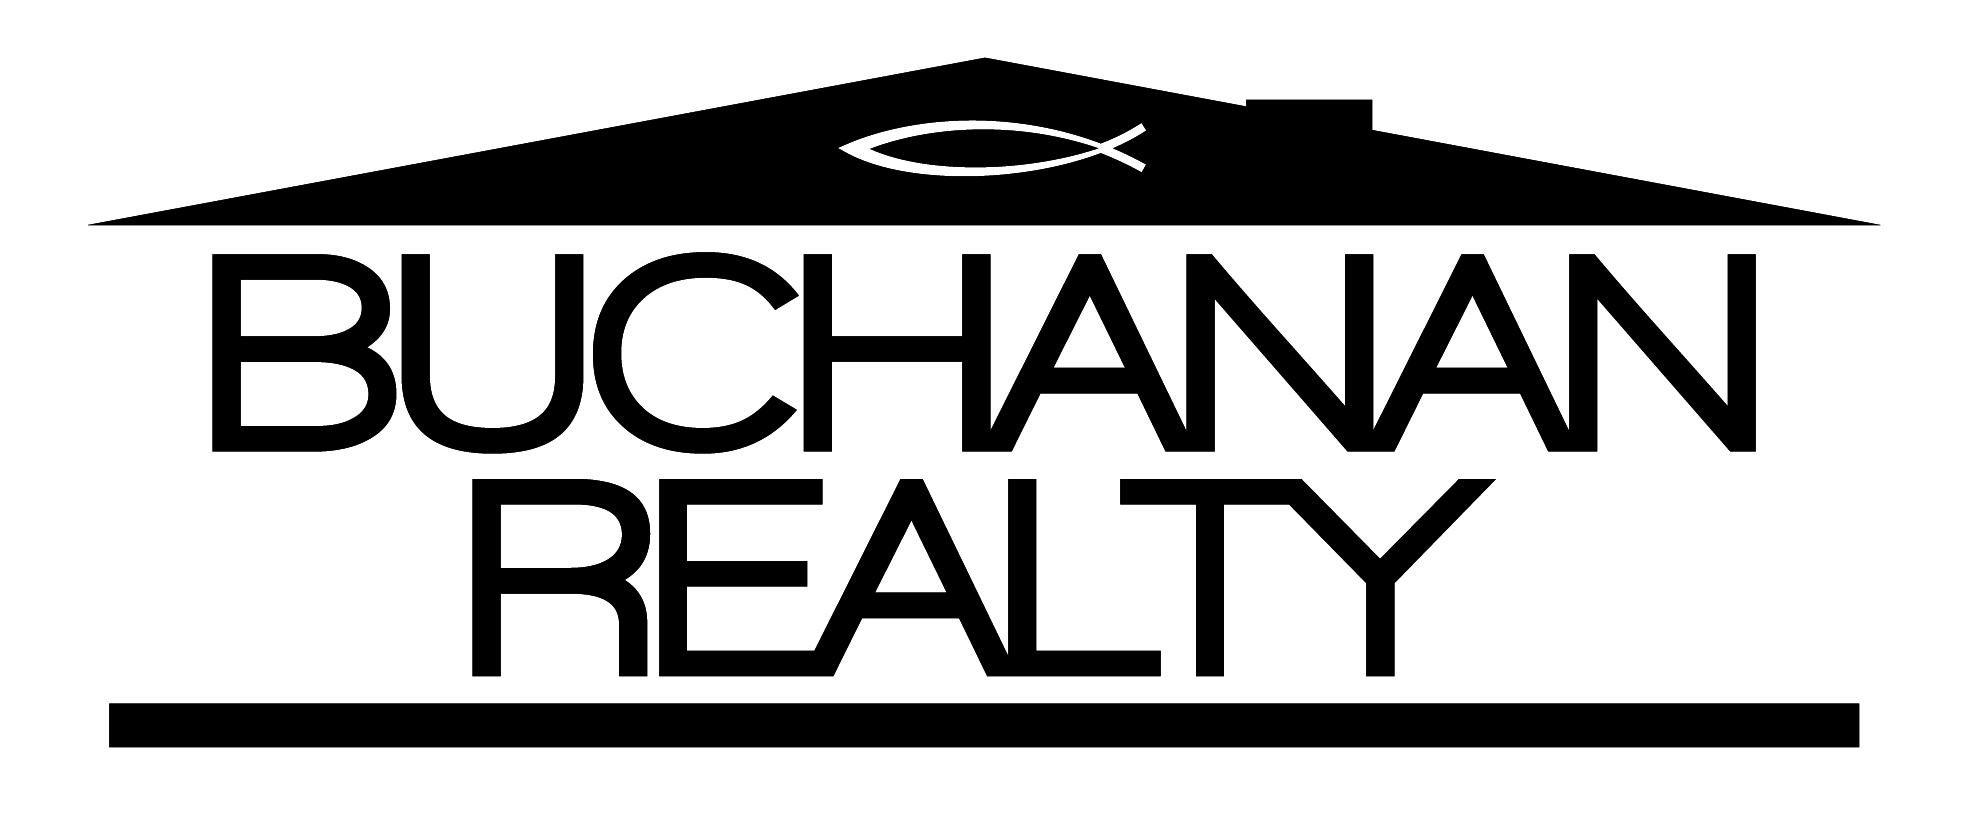 Buchanan Realty